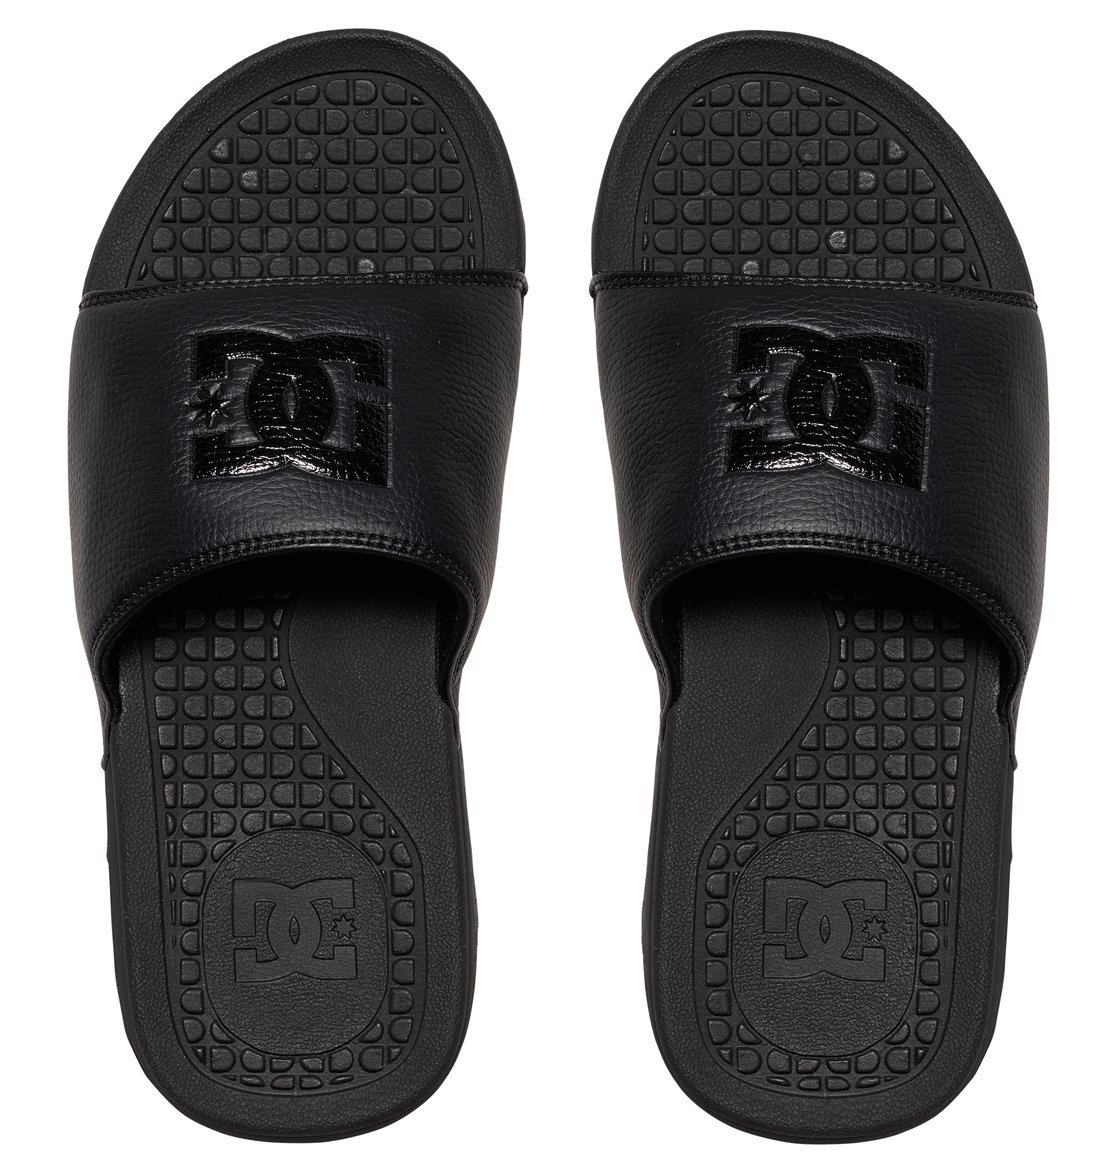 Shop Shoes Shop Dc Dc Instappersbolsa Dc Shoes Online Online Instappersbolsa OPXZiTku